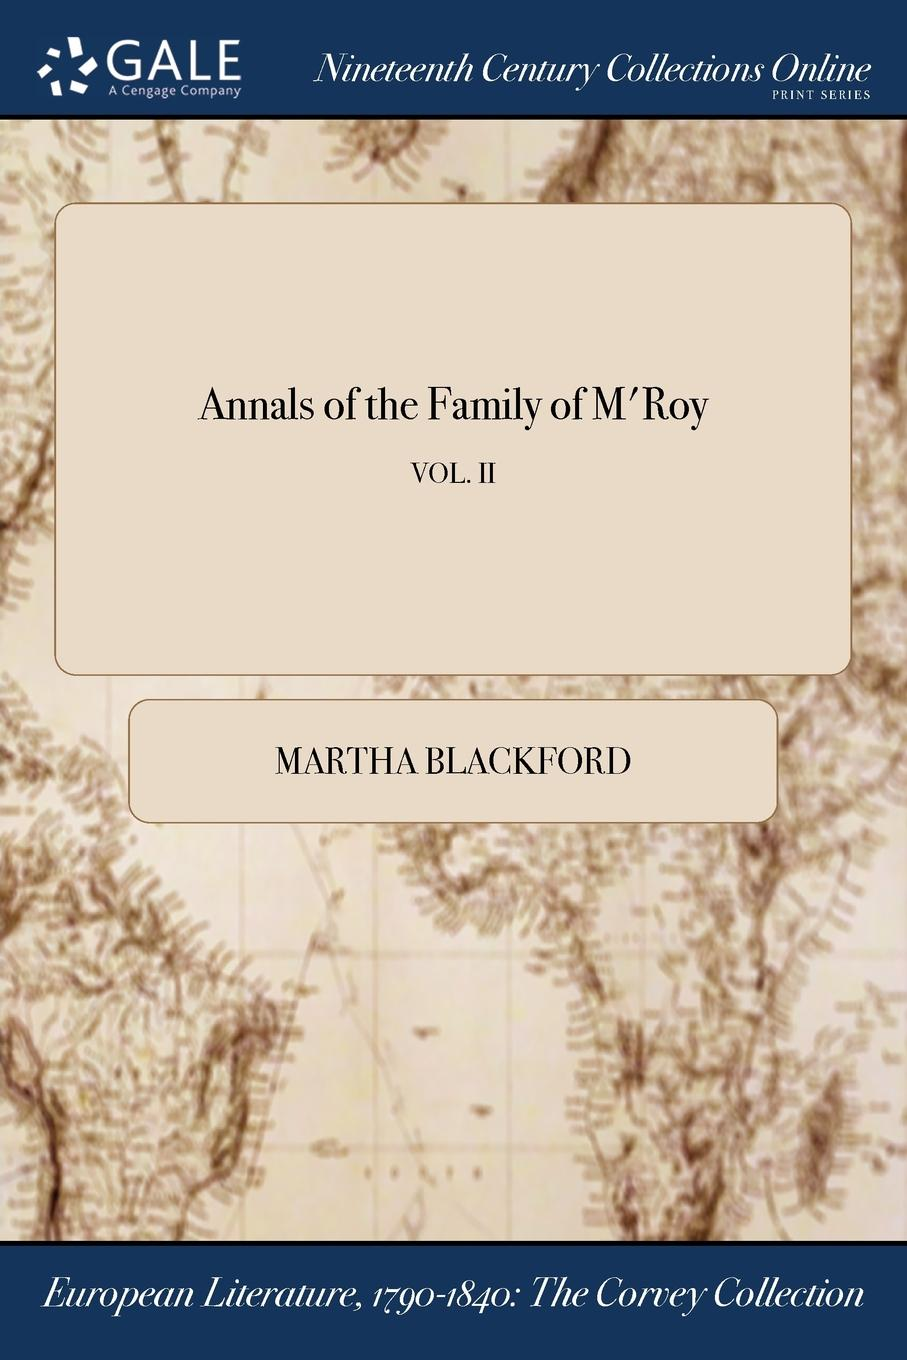 Martha Blackford Annals of the Family of M.Roy; VOL. II